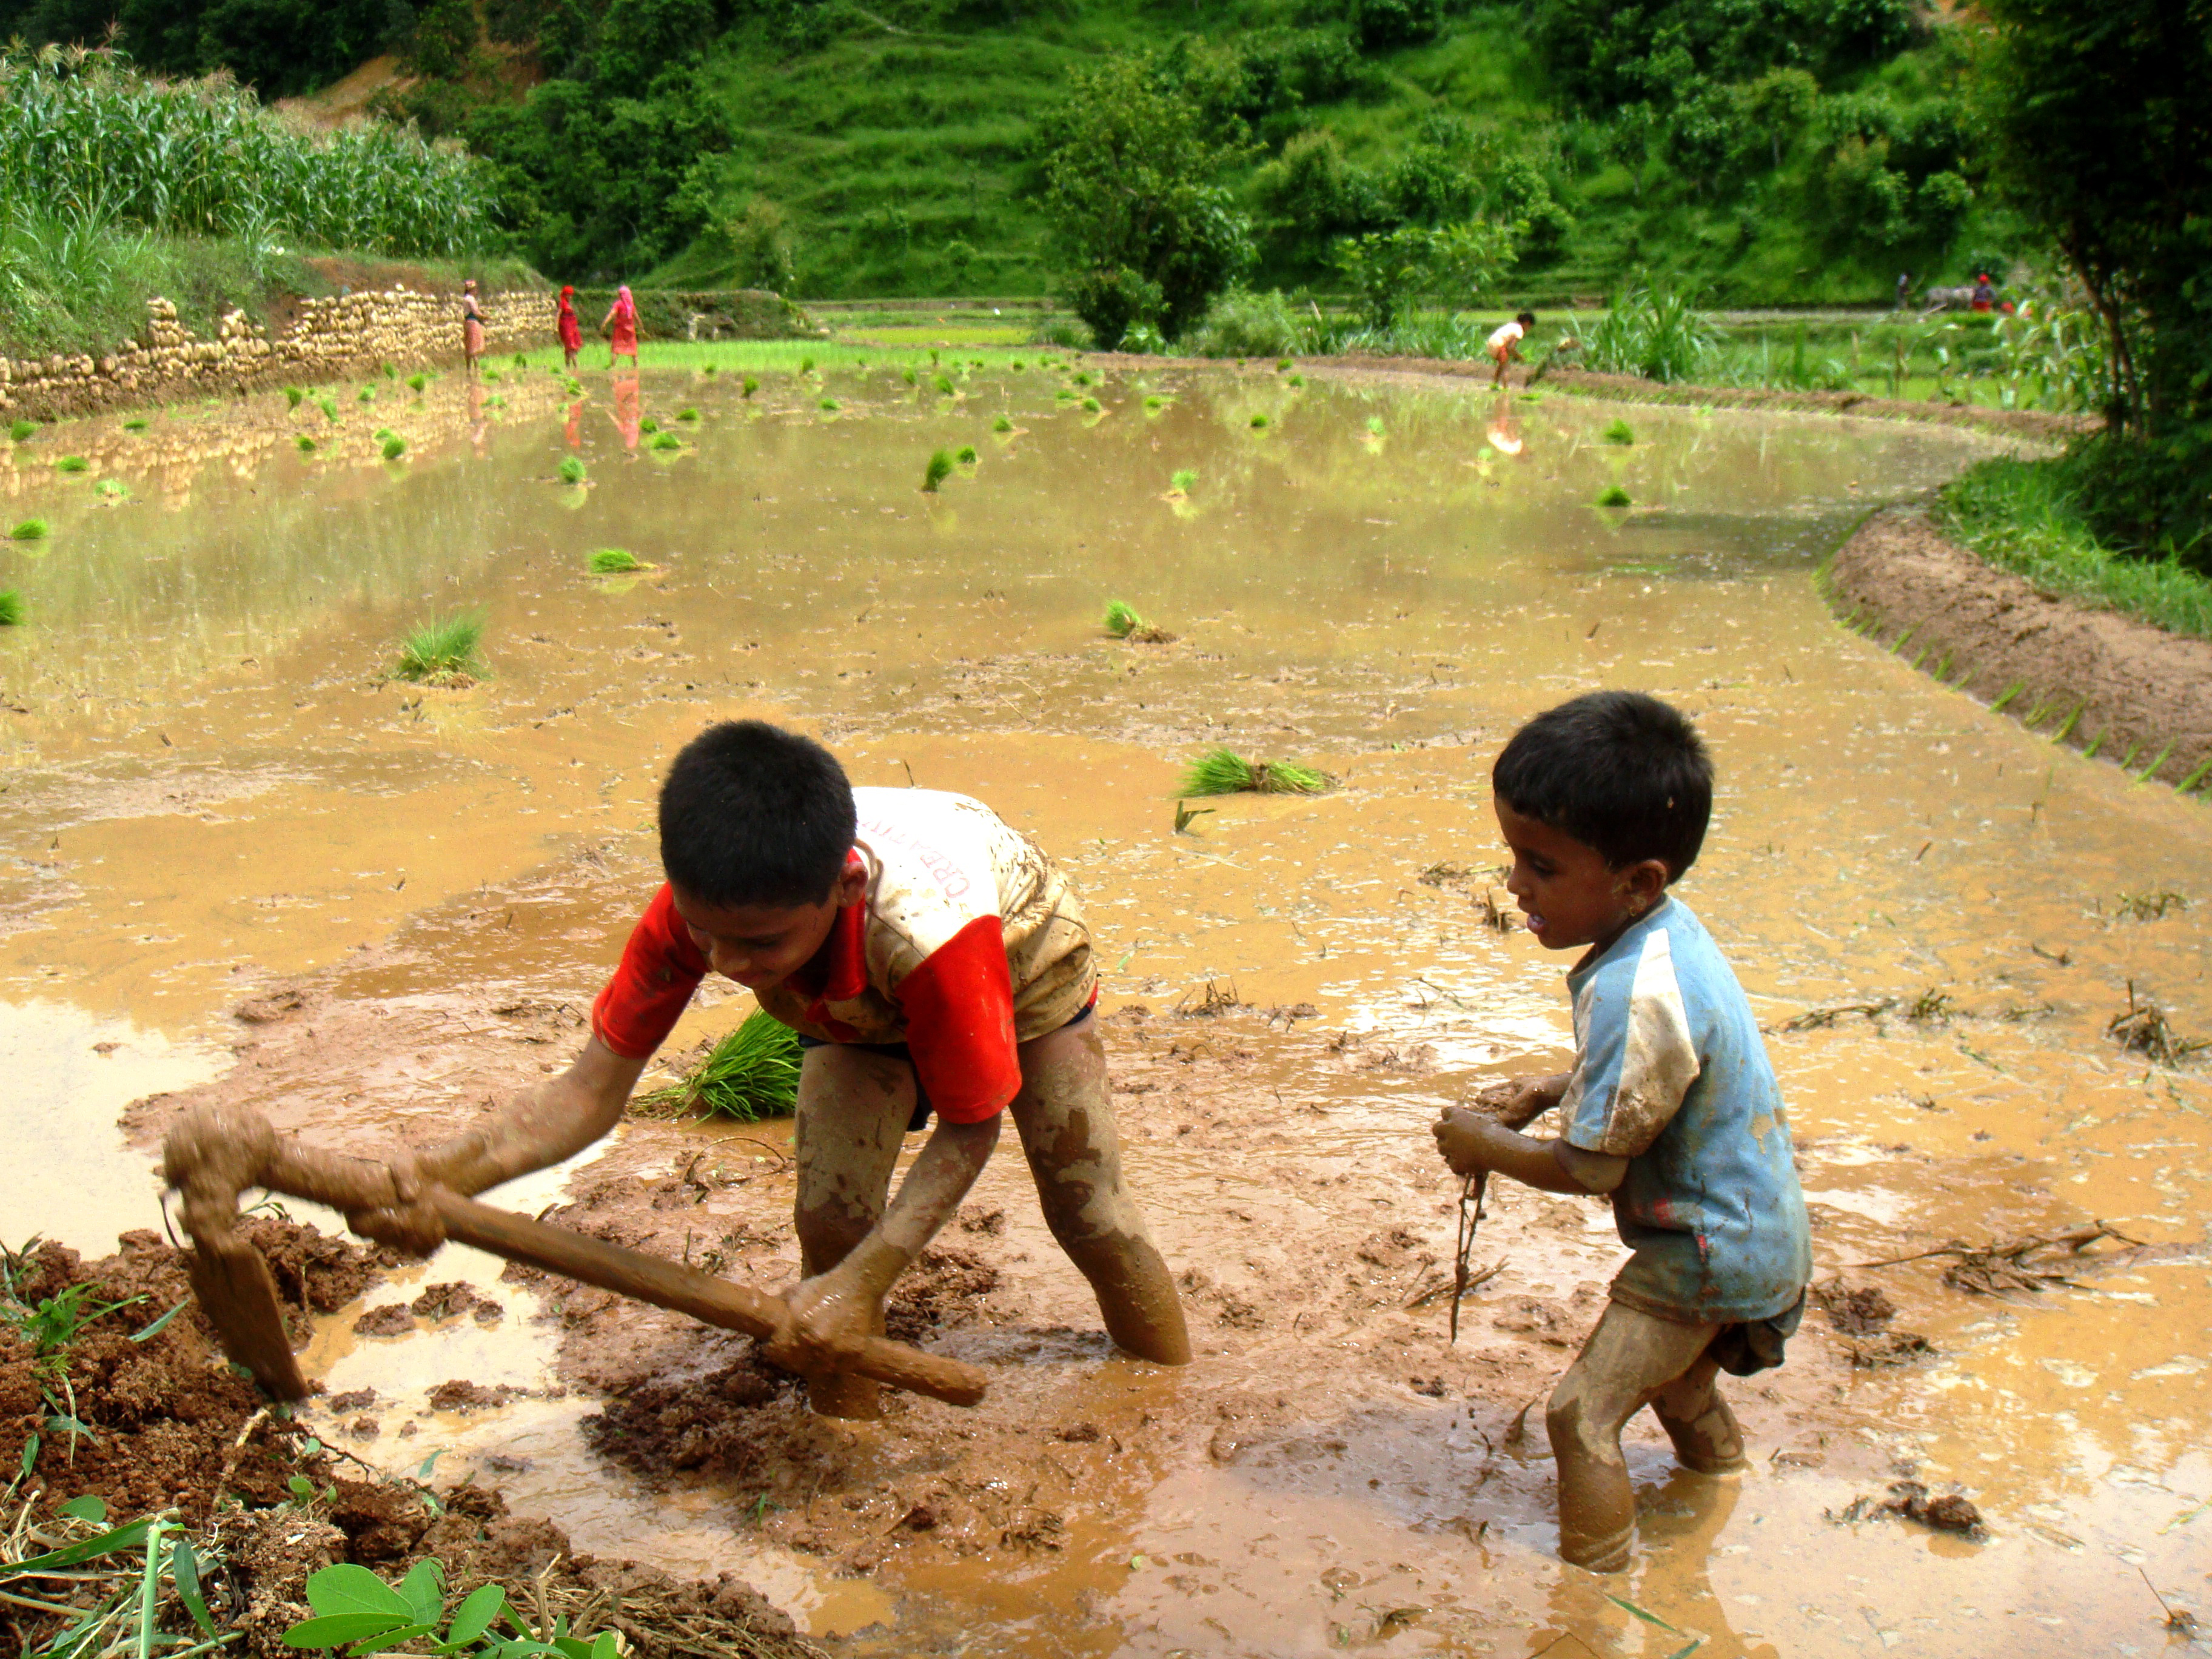 The second place winner of the 2015 Ag Abroad Photo Contest. Entry description: The picture was taken in July 2014. It describes a typical day of a rice planting day in hilly area of Nepal. Every member of the house hold participates and goes in the field to plant the rice. Nepal has a sustainable agriculture farming system. Every household is a farmer and has a small piece of land and few domestic animals. They live from the food they produce in field and from animals they raise. Rice is a staple food in Nepal and this picture shows a typical rice cultivation day in the hills. The field shown here is almost ready to plant the rice saplings. Farmers use ox and human power (spades) to plough the field and make it ready for planting. Usually male members plough the field and female members plant the rice. Female members of the house in the far of the picture are planting the rice. Starting from a kid you are taught about farming system. They get involved in every little way they can in the agriculture system. It is in fact fun for children to play and at the same time learn about the agriculture system and hardship of life.